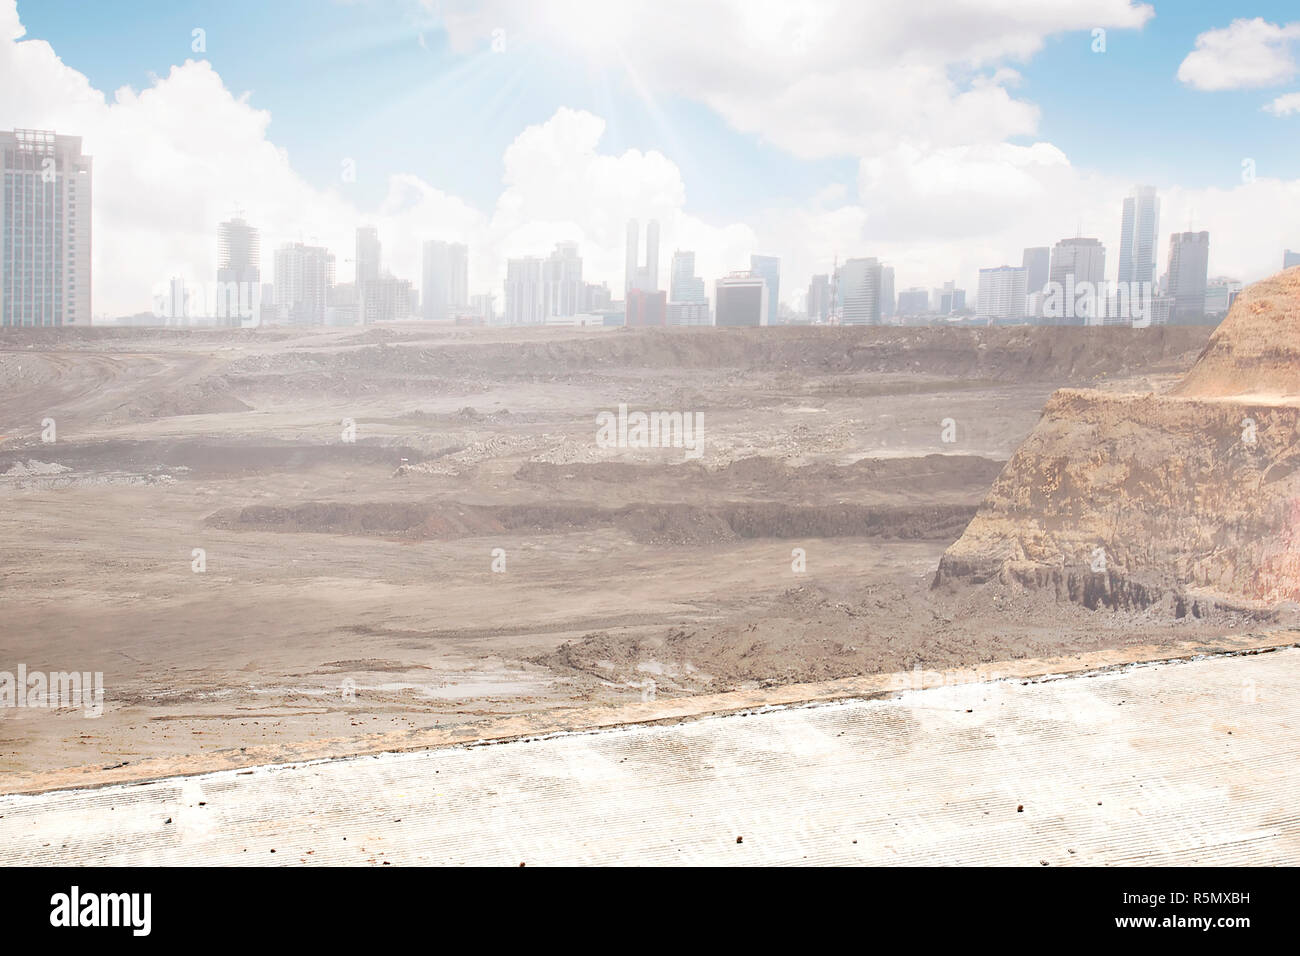 Destroyed City - Stock Image